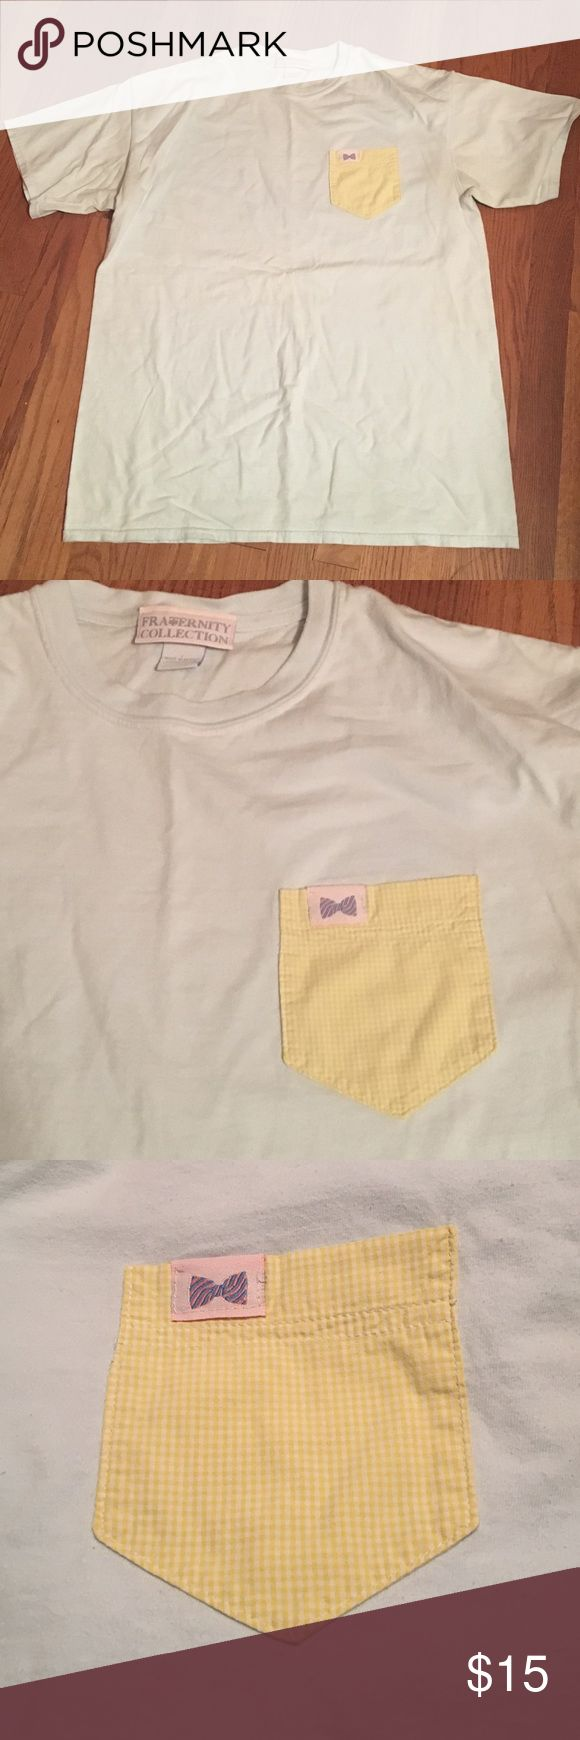 Frat Collection Pocket Tee Ladies Fraternity Collection Pocket Tee. Light Blue Tshirt with yellow check Pocket. Excellent used condition! Smoke free home. Fraternity Collection Tops Tees - Short Sleeve